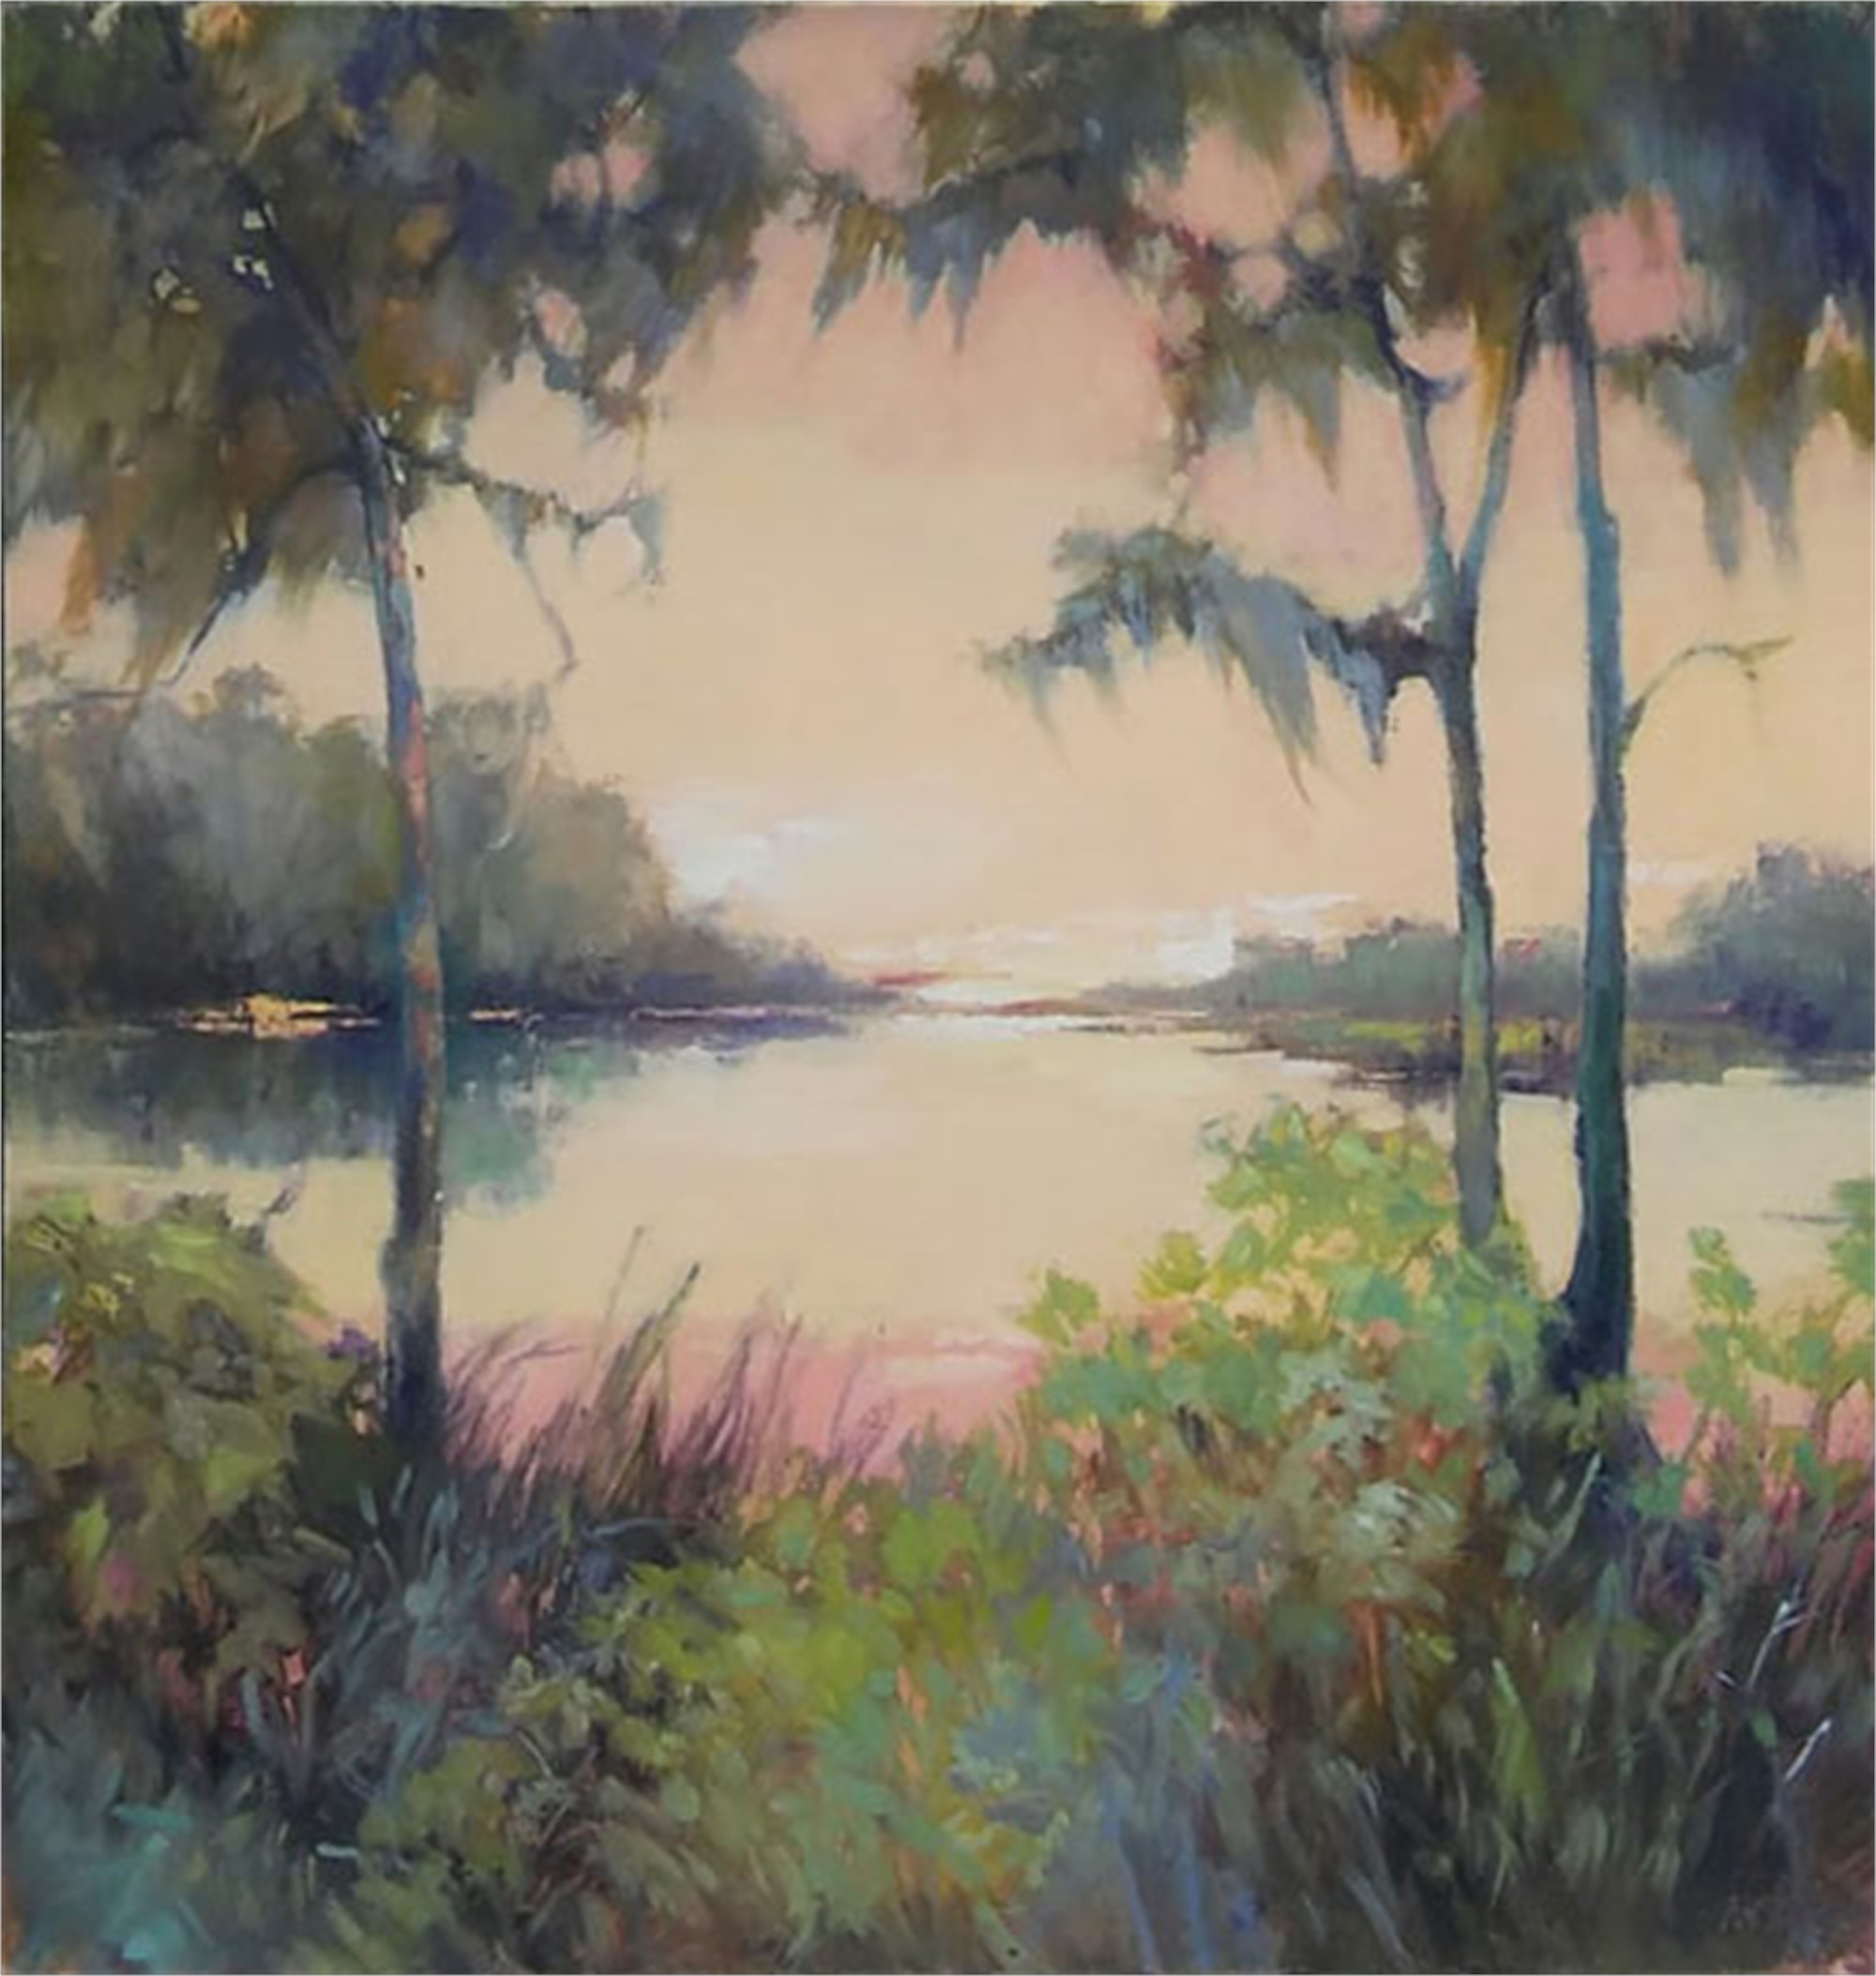 Spring Flood III by Madeline Dukes